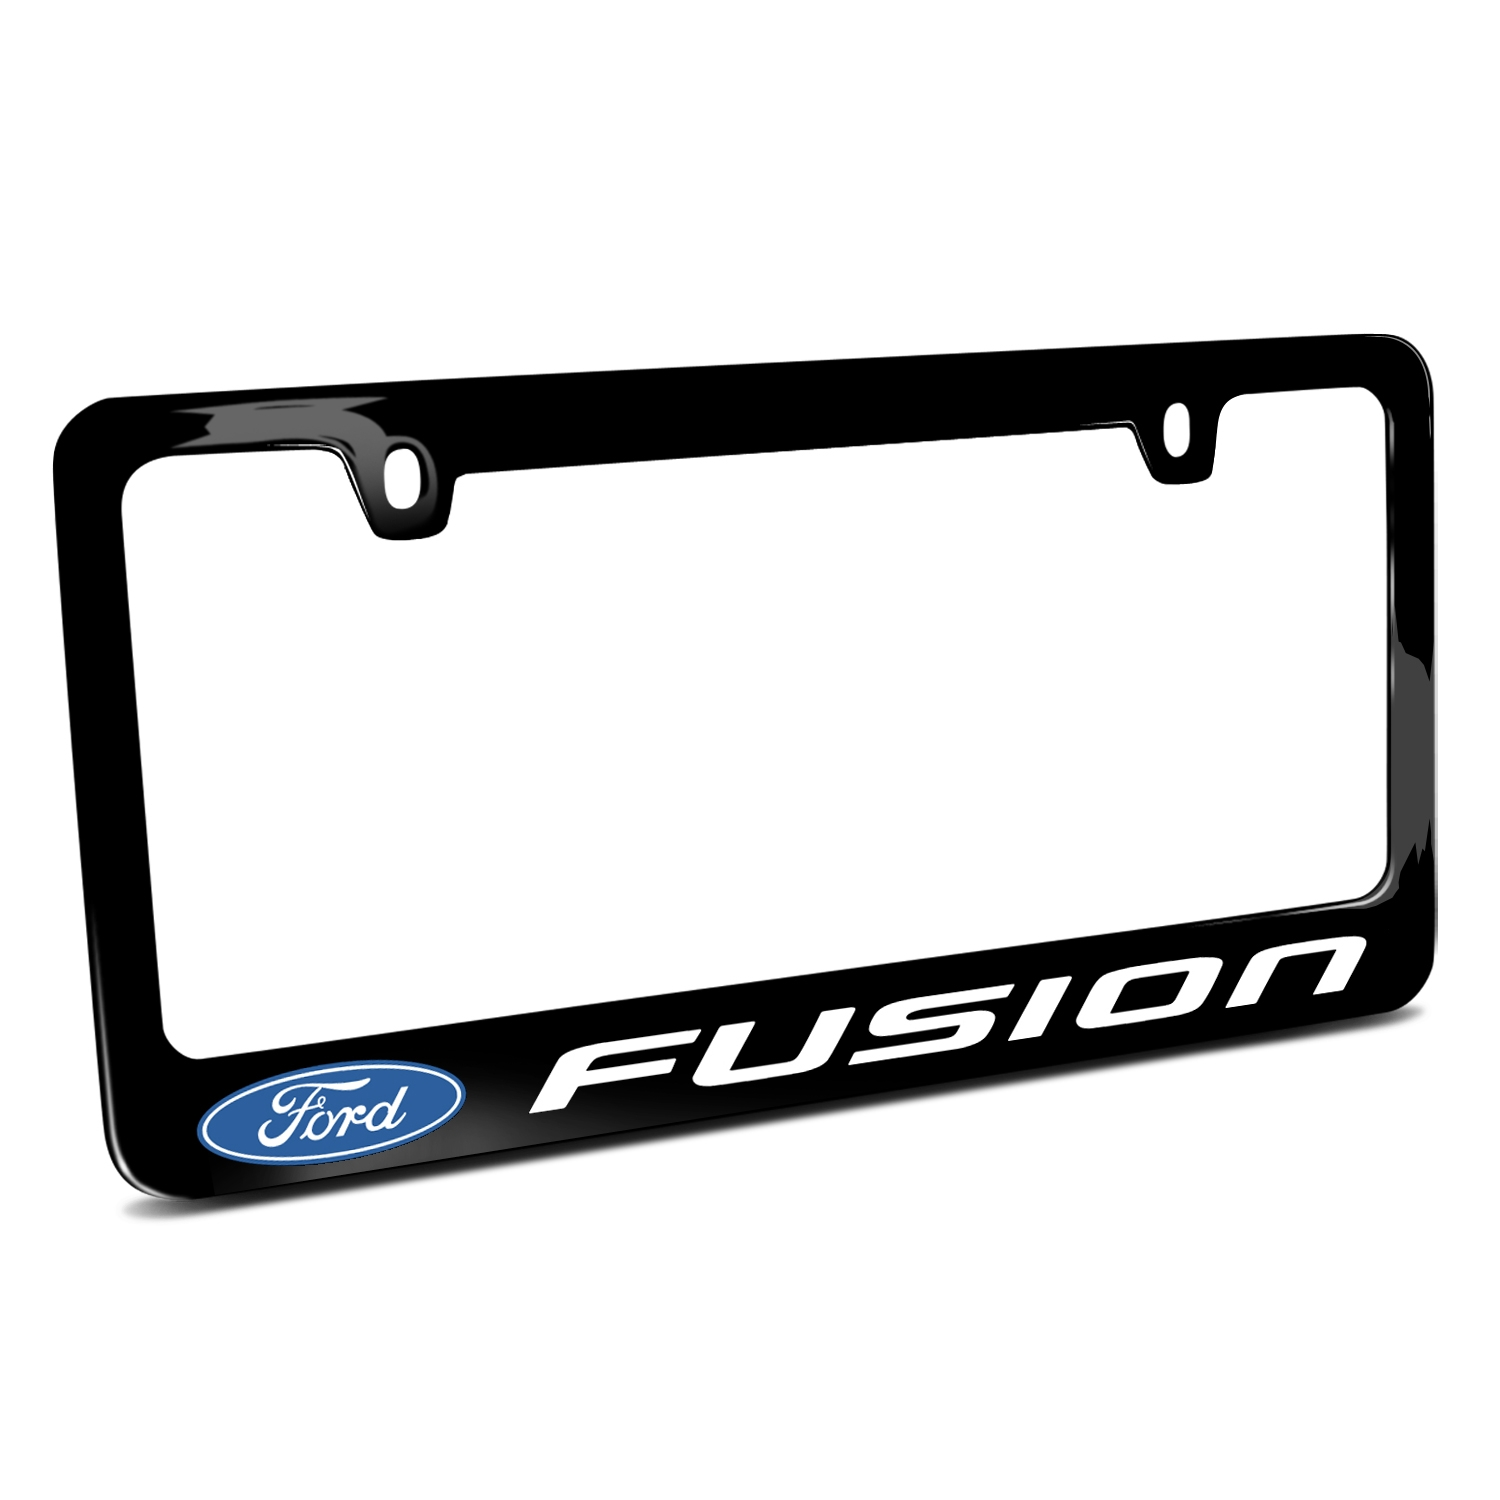 Ford Fusion Black Metal License Plate Frame